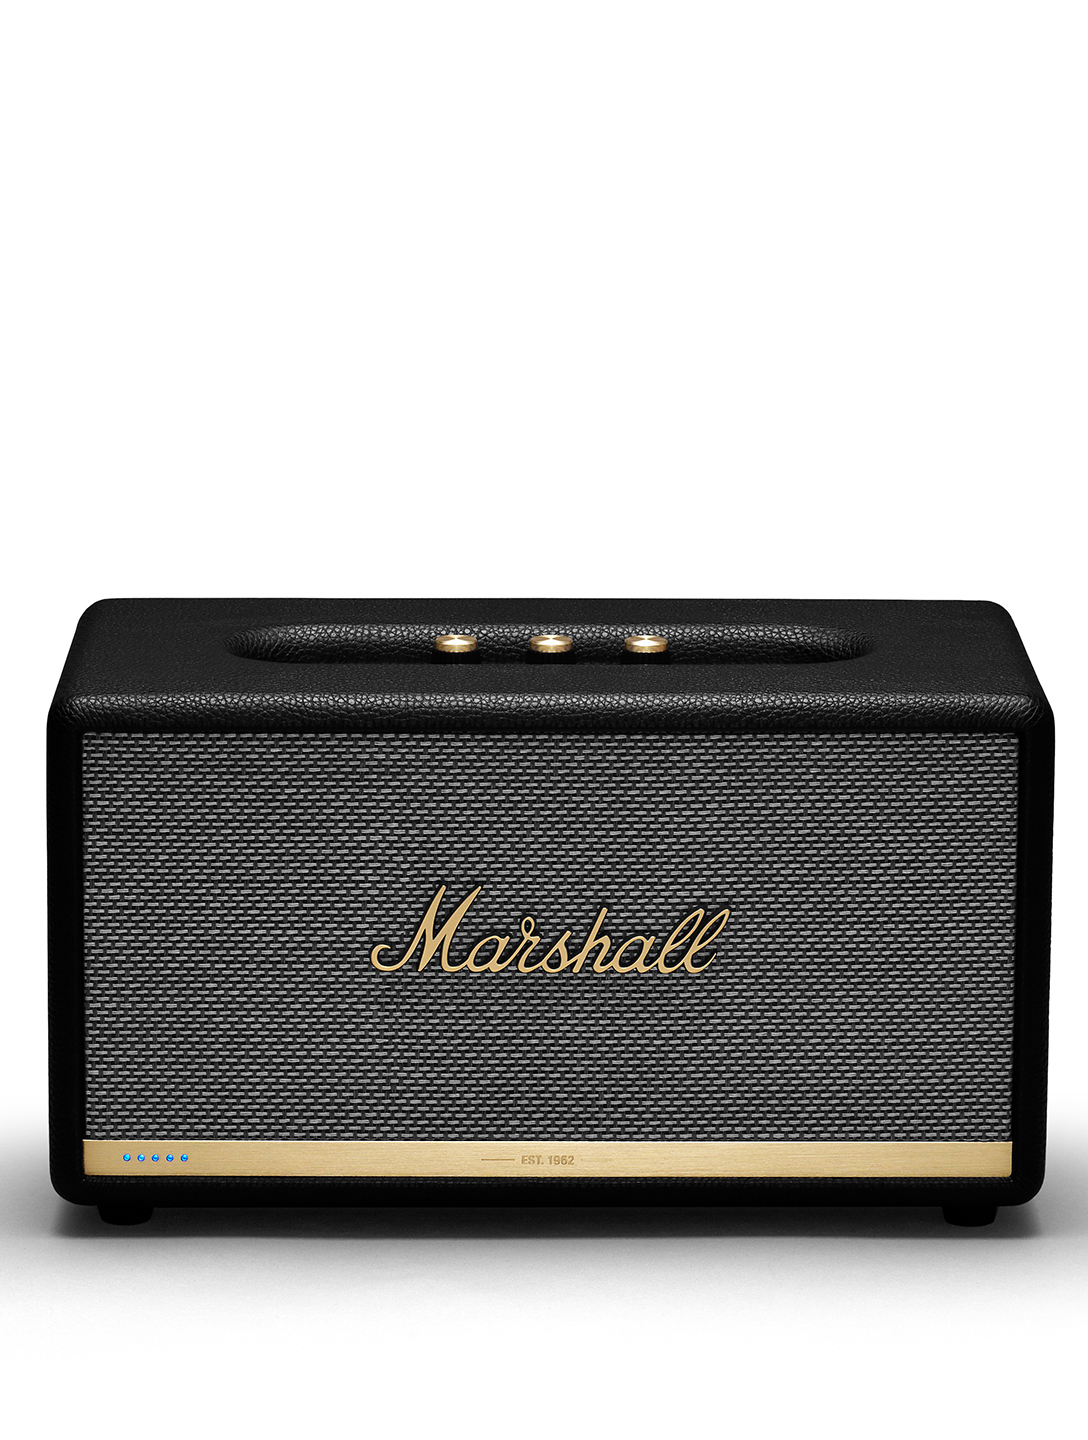 MARSHALL Stanmore II Voice Speaker Google Assistant Designers Black